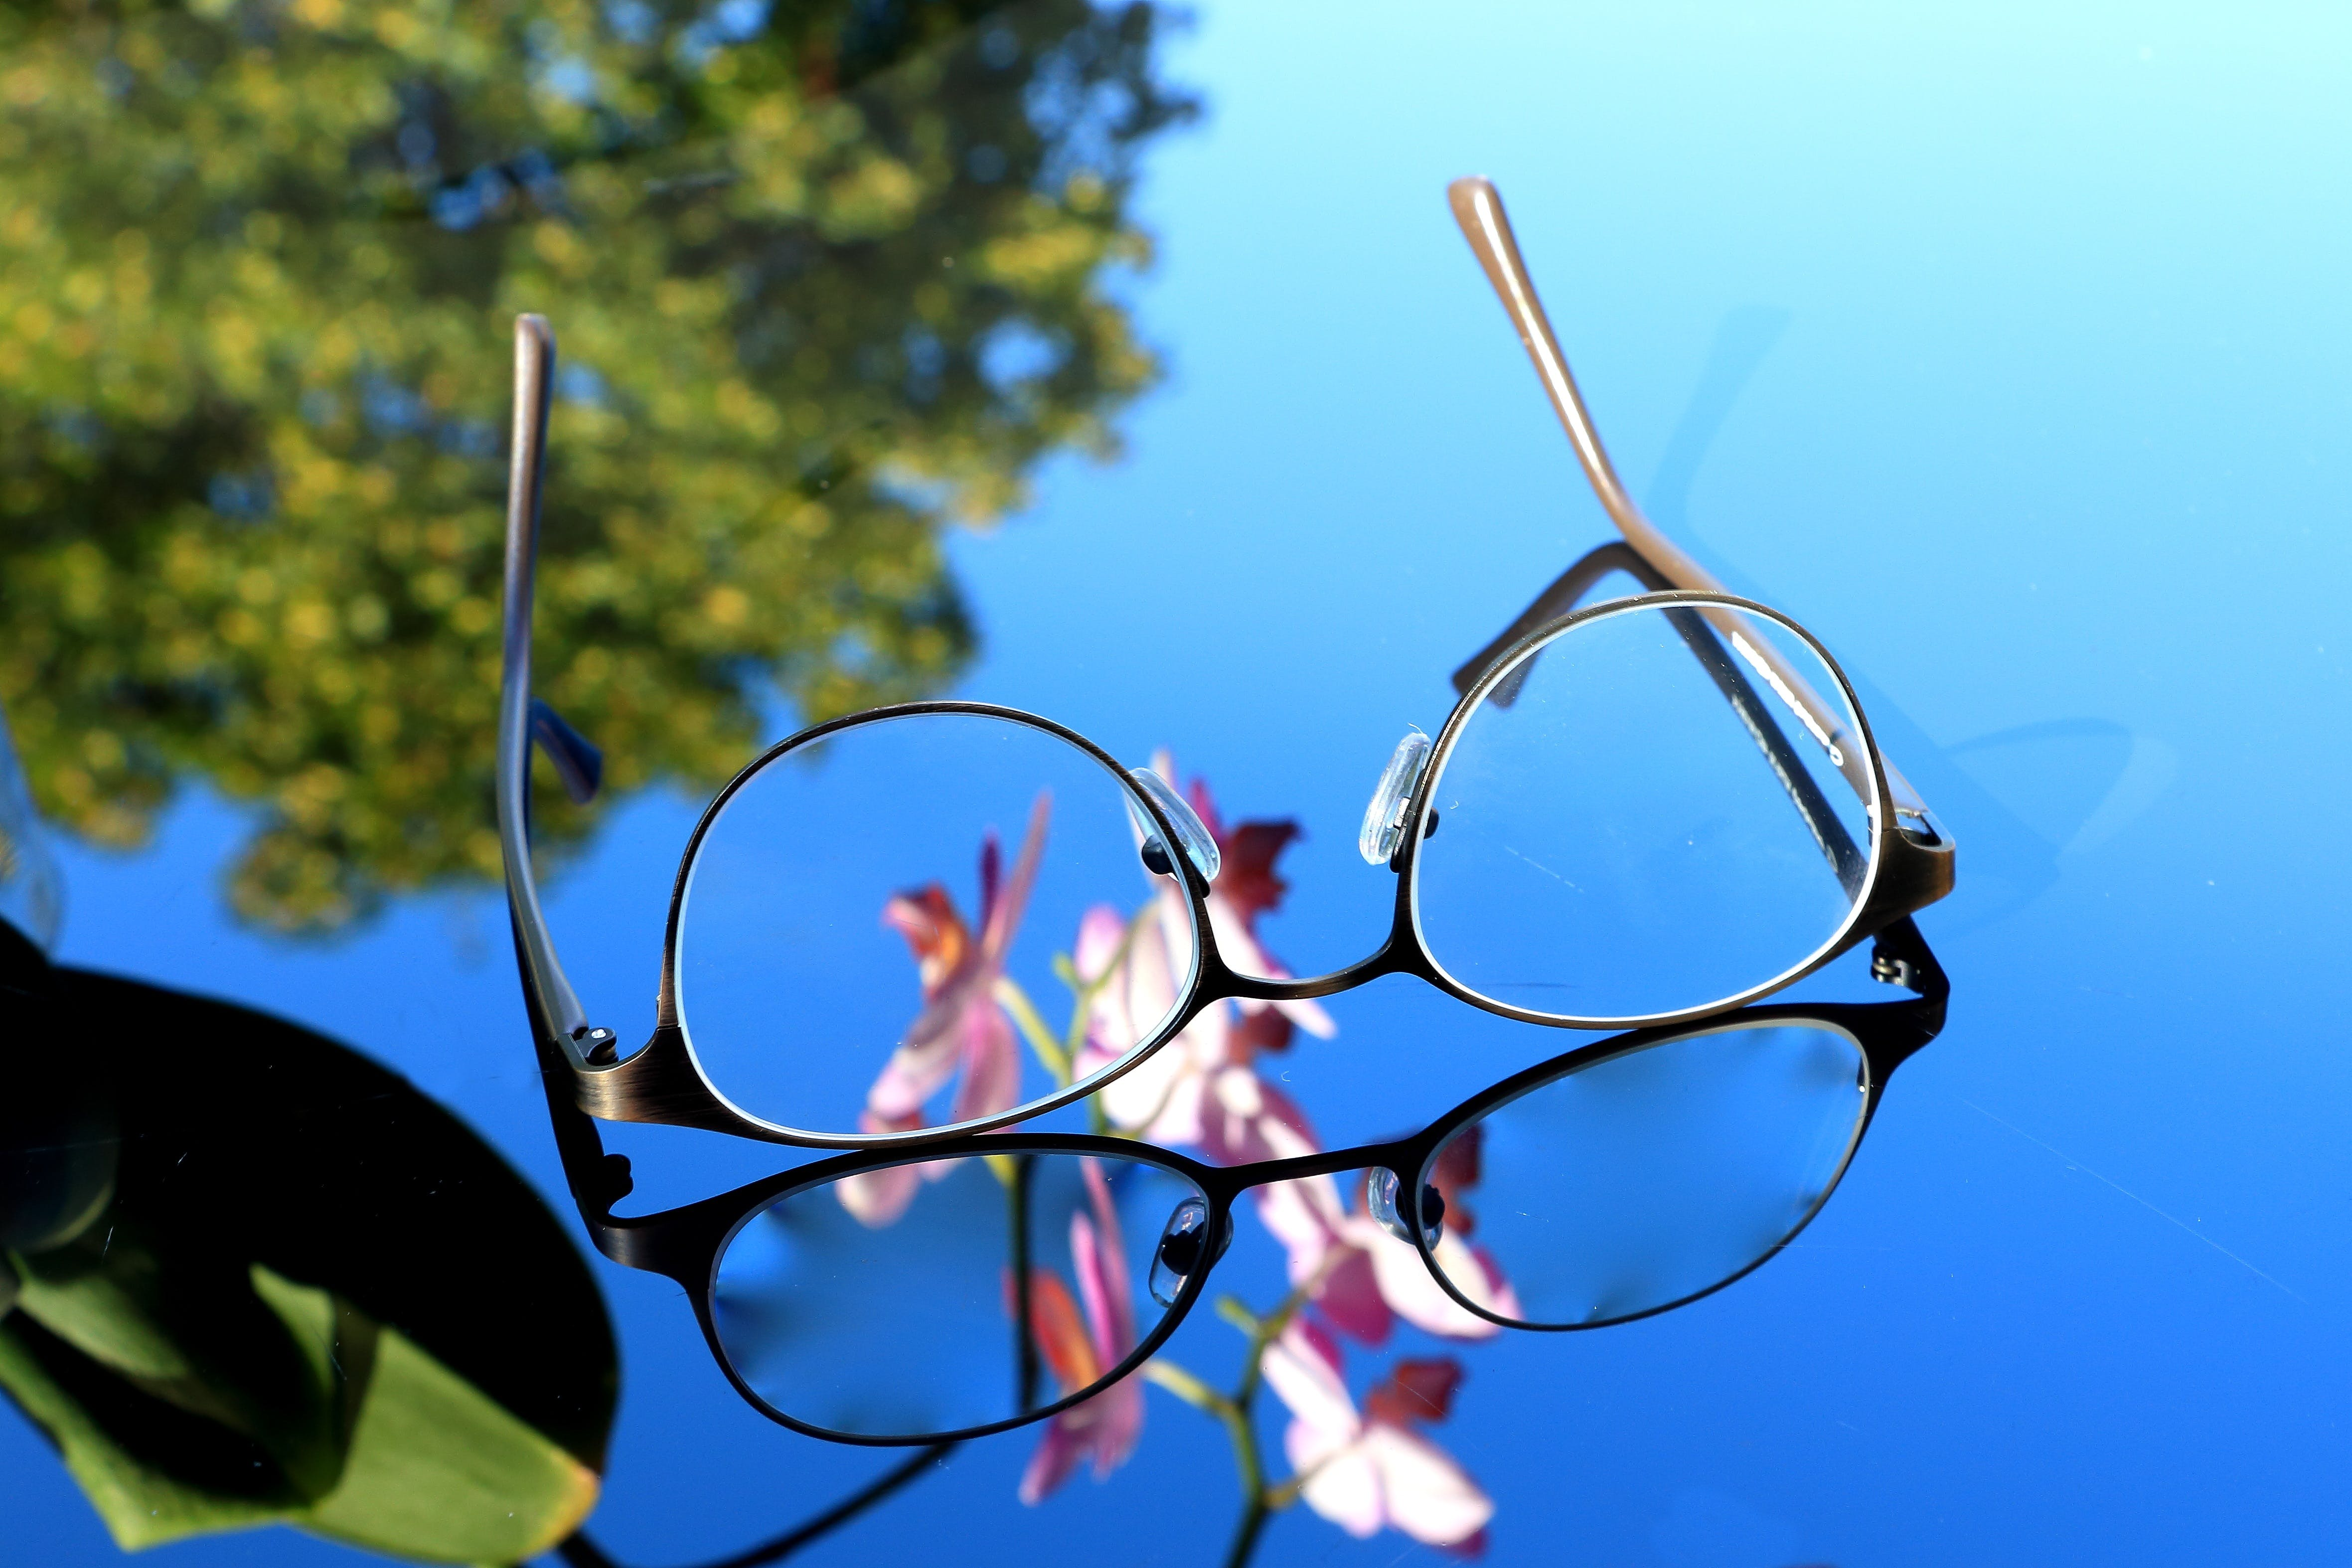 Macro Photography of Eyeglasses